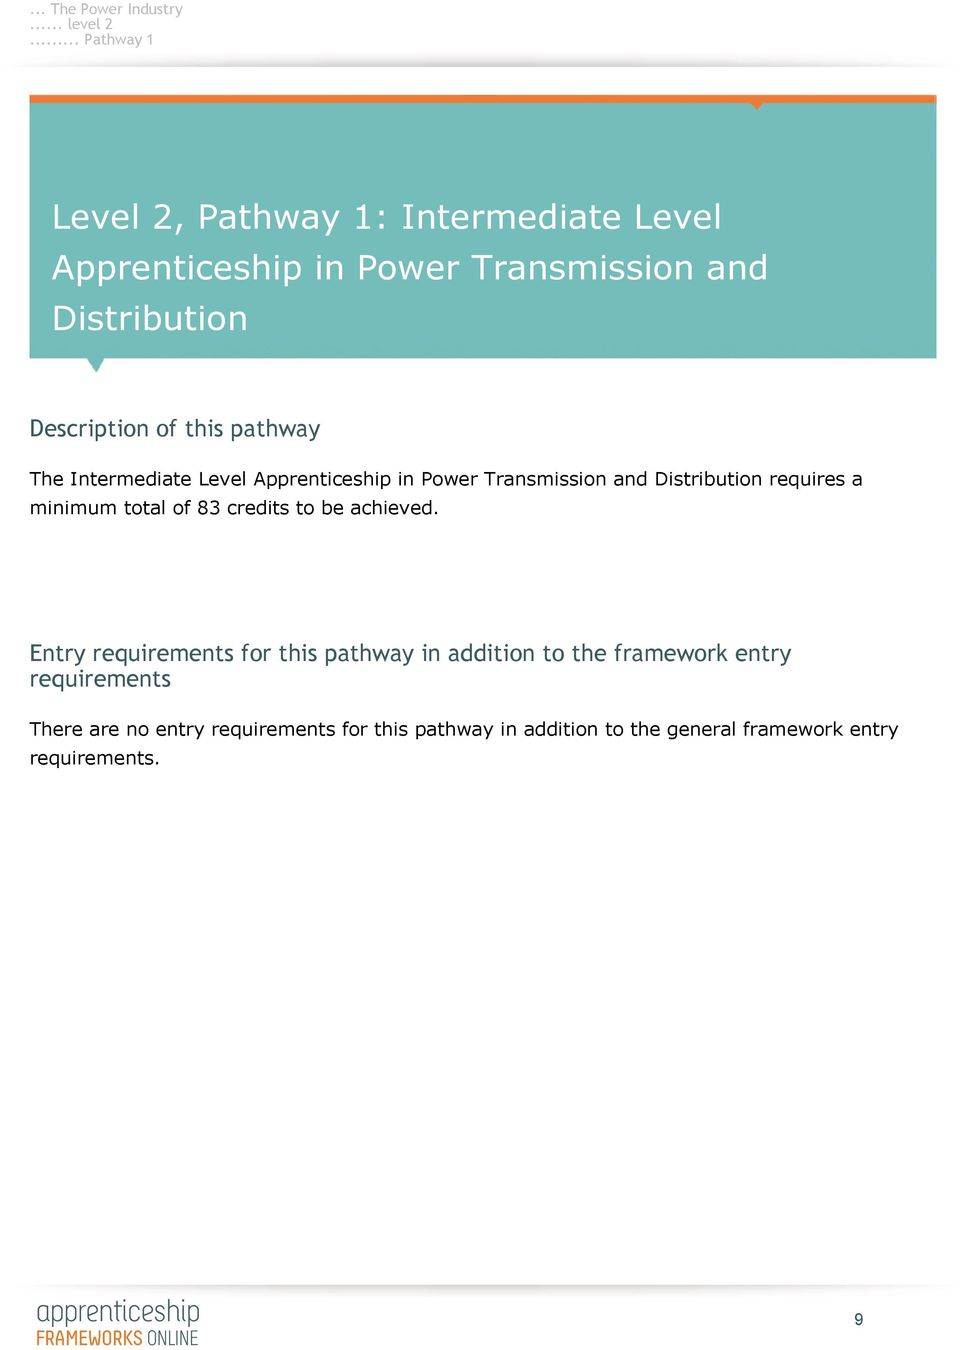 Description of this pathway The Intermediate Level Apprenticeship in Power Transmission and Distribution requires a